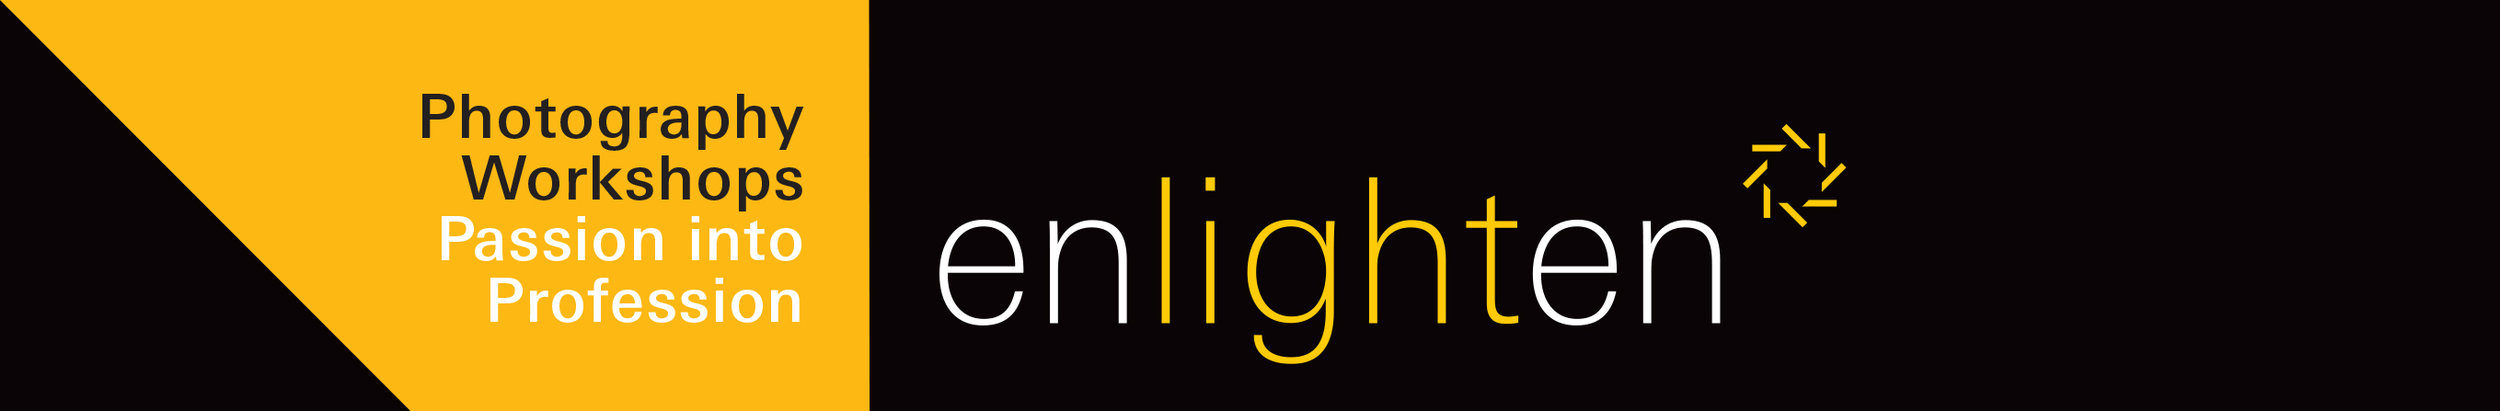 Enlighten_Melbourne logo banner.jpg